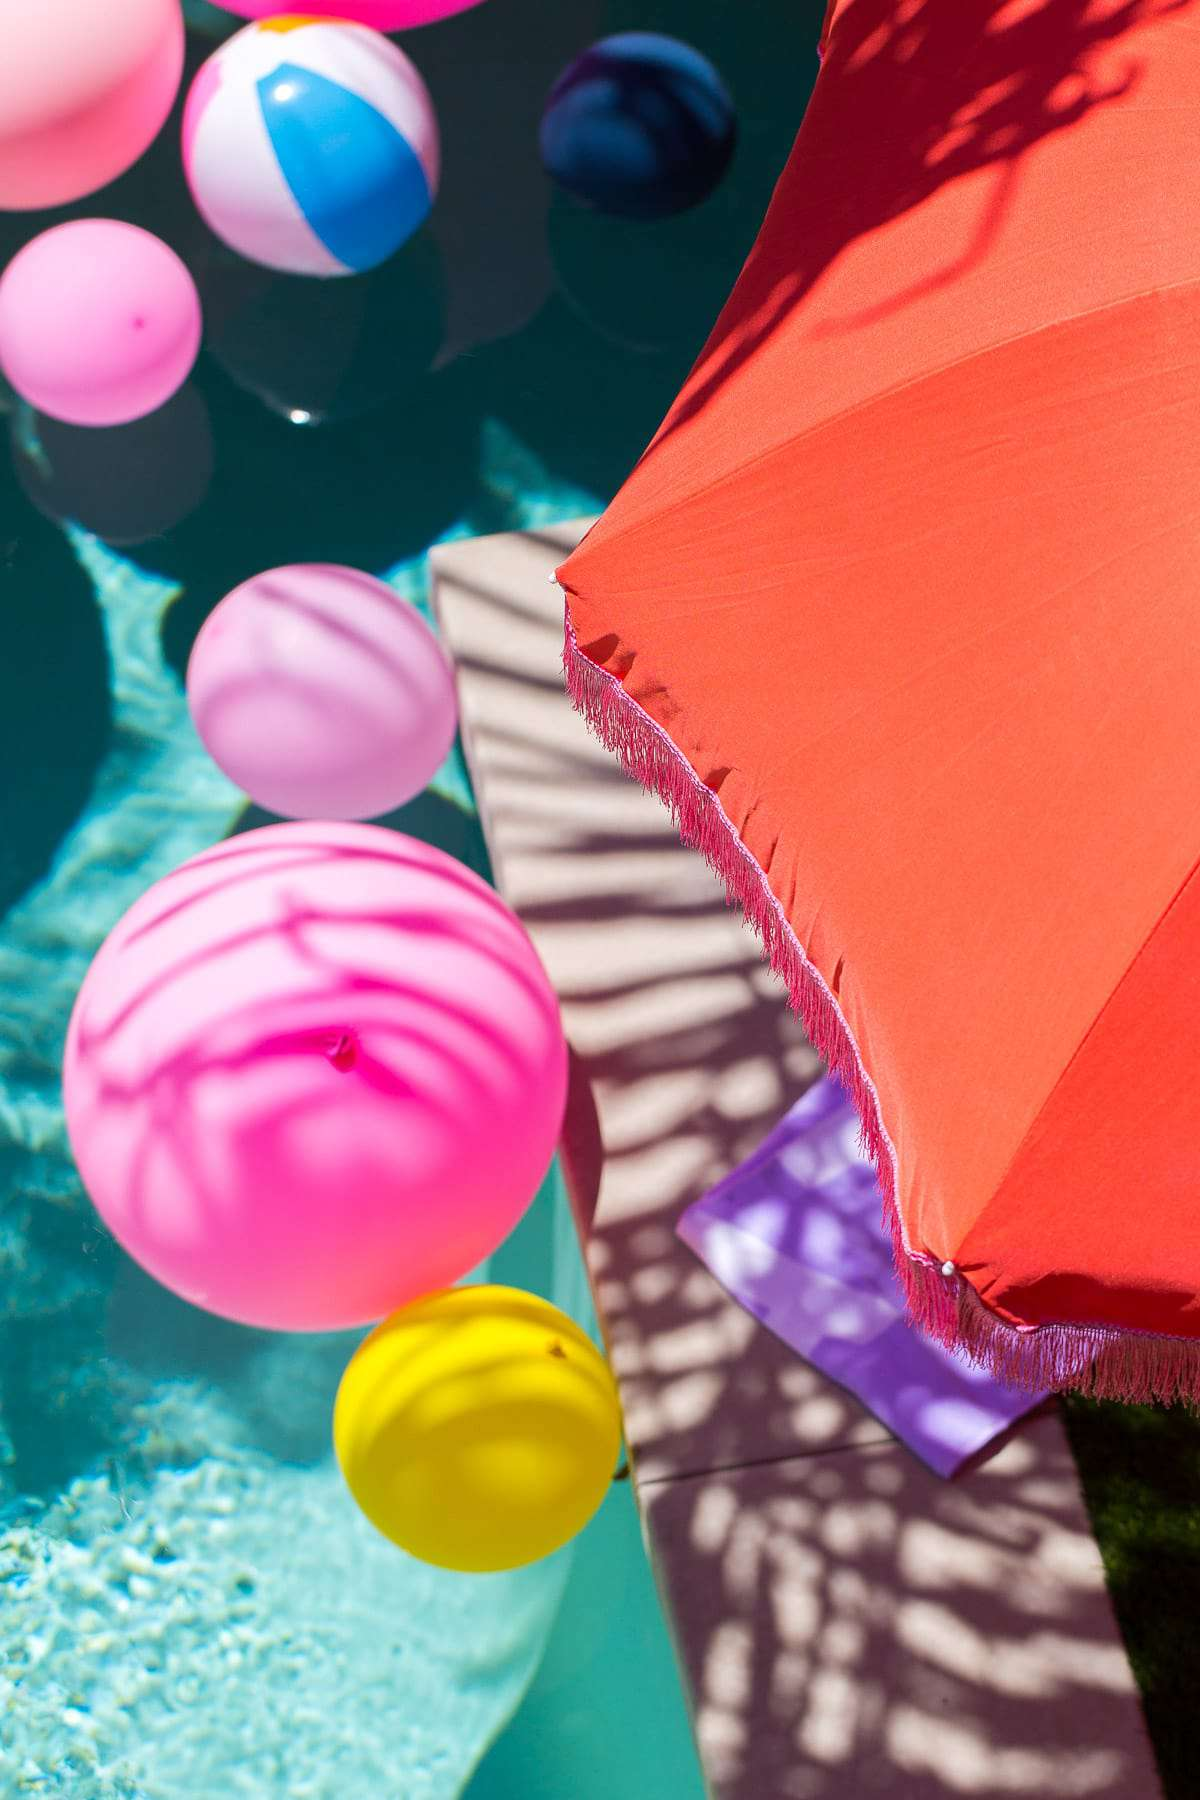 adult birthday party ideas - do something active